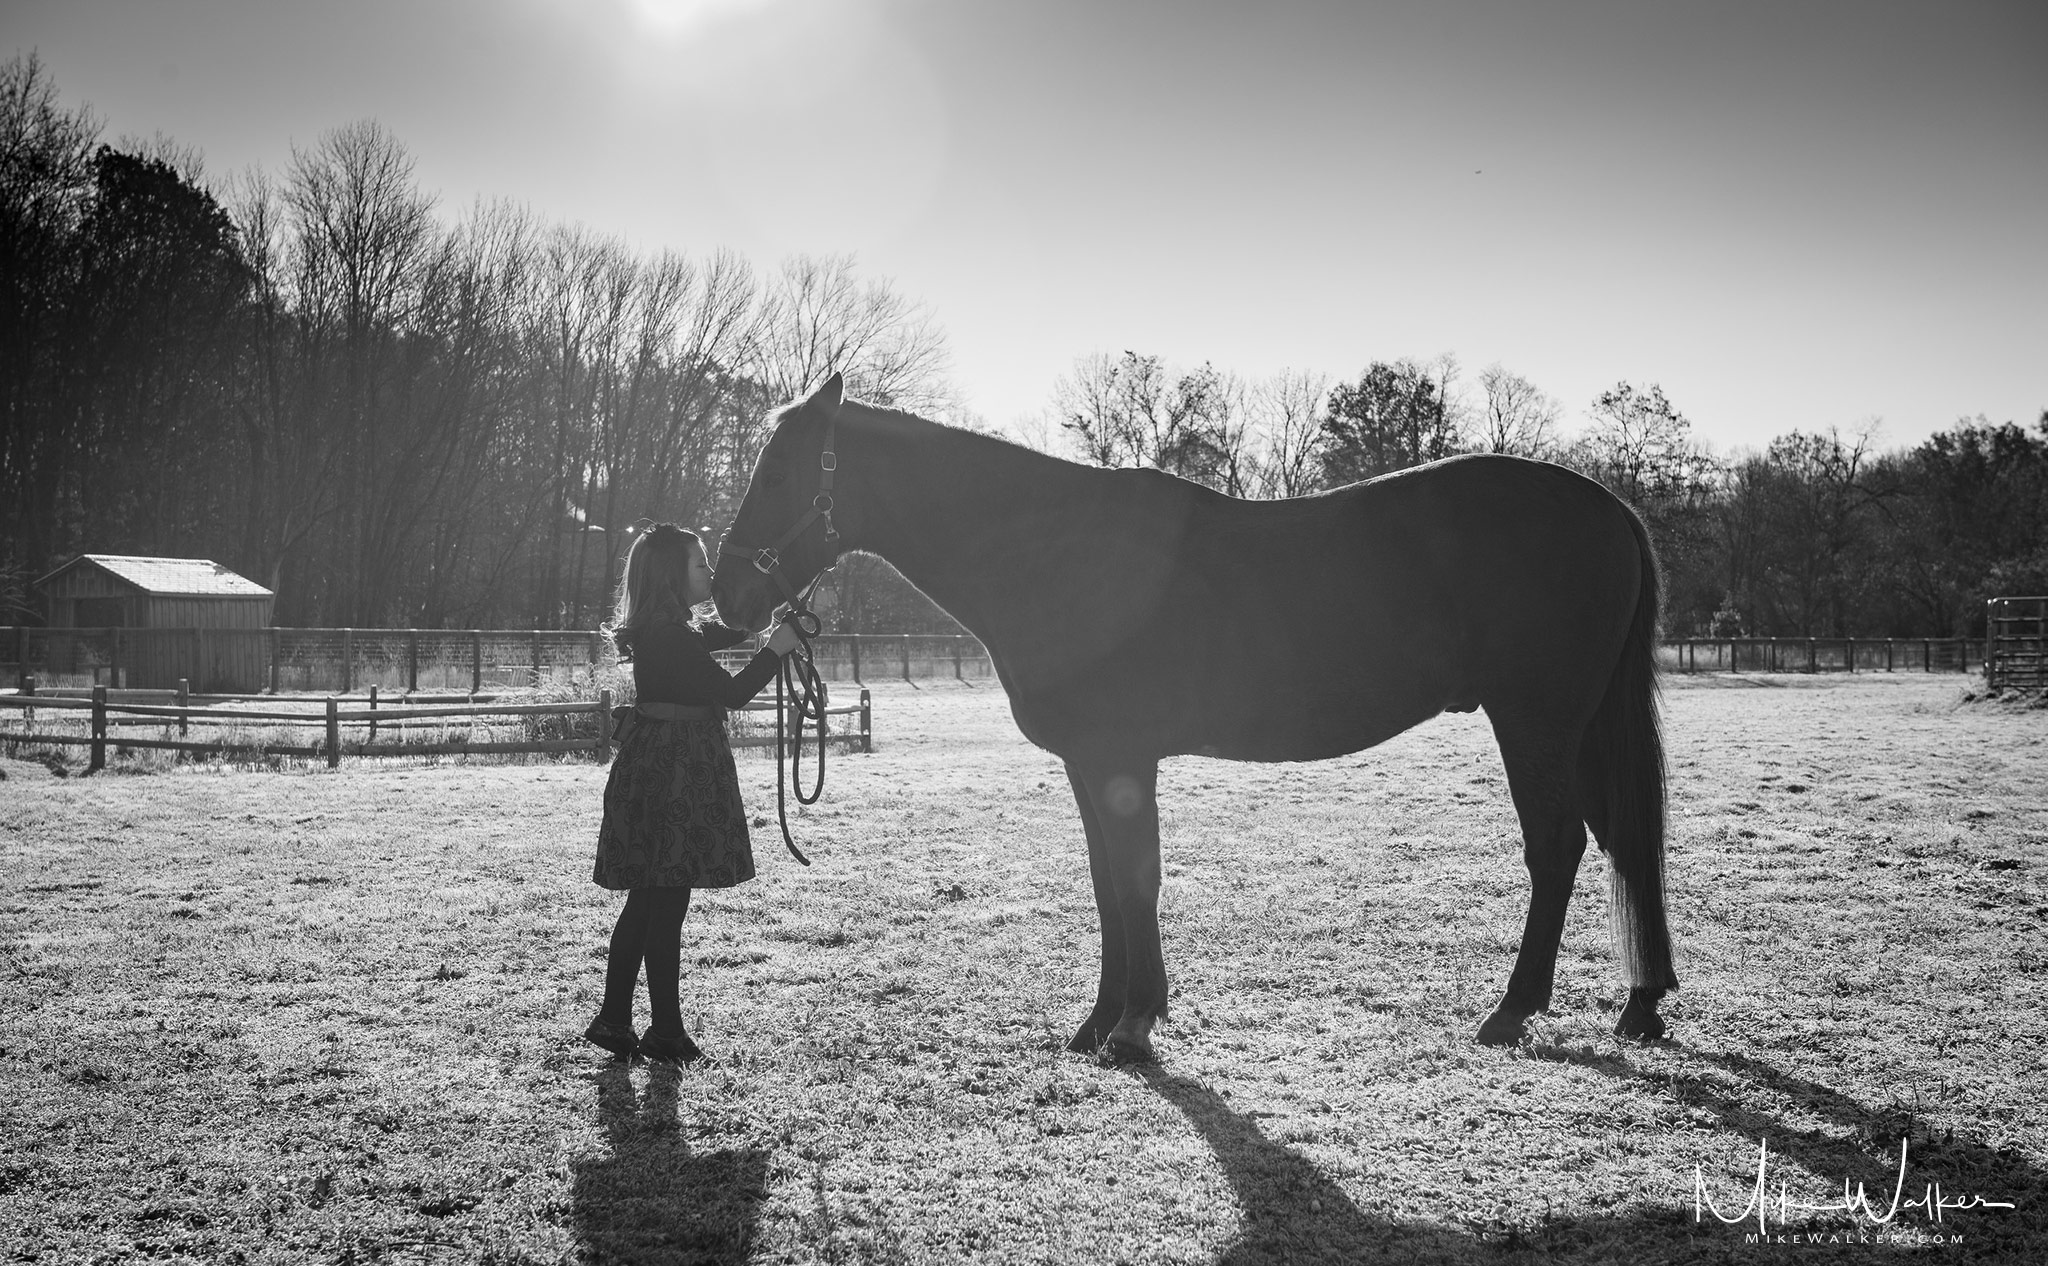 A young girl kissing a horse. Family photographer Mike Walker.